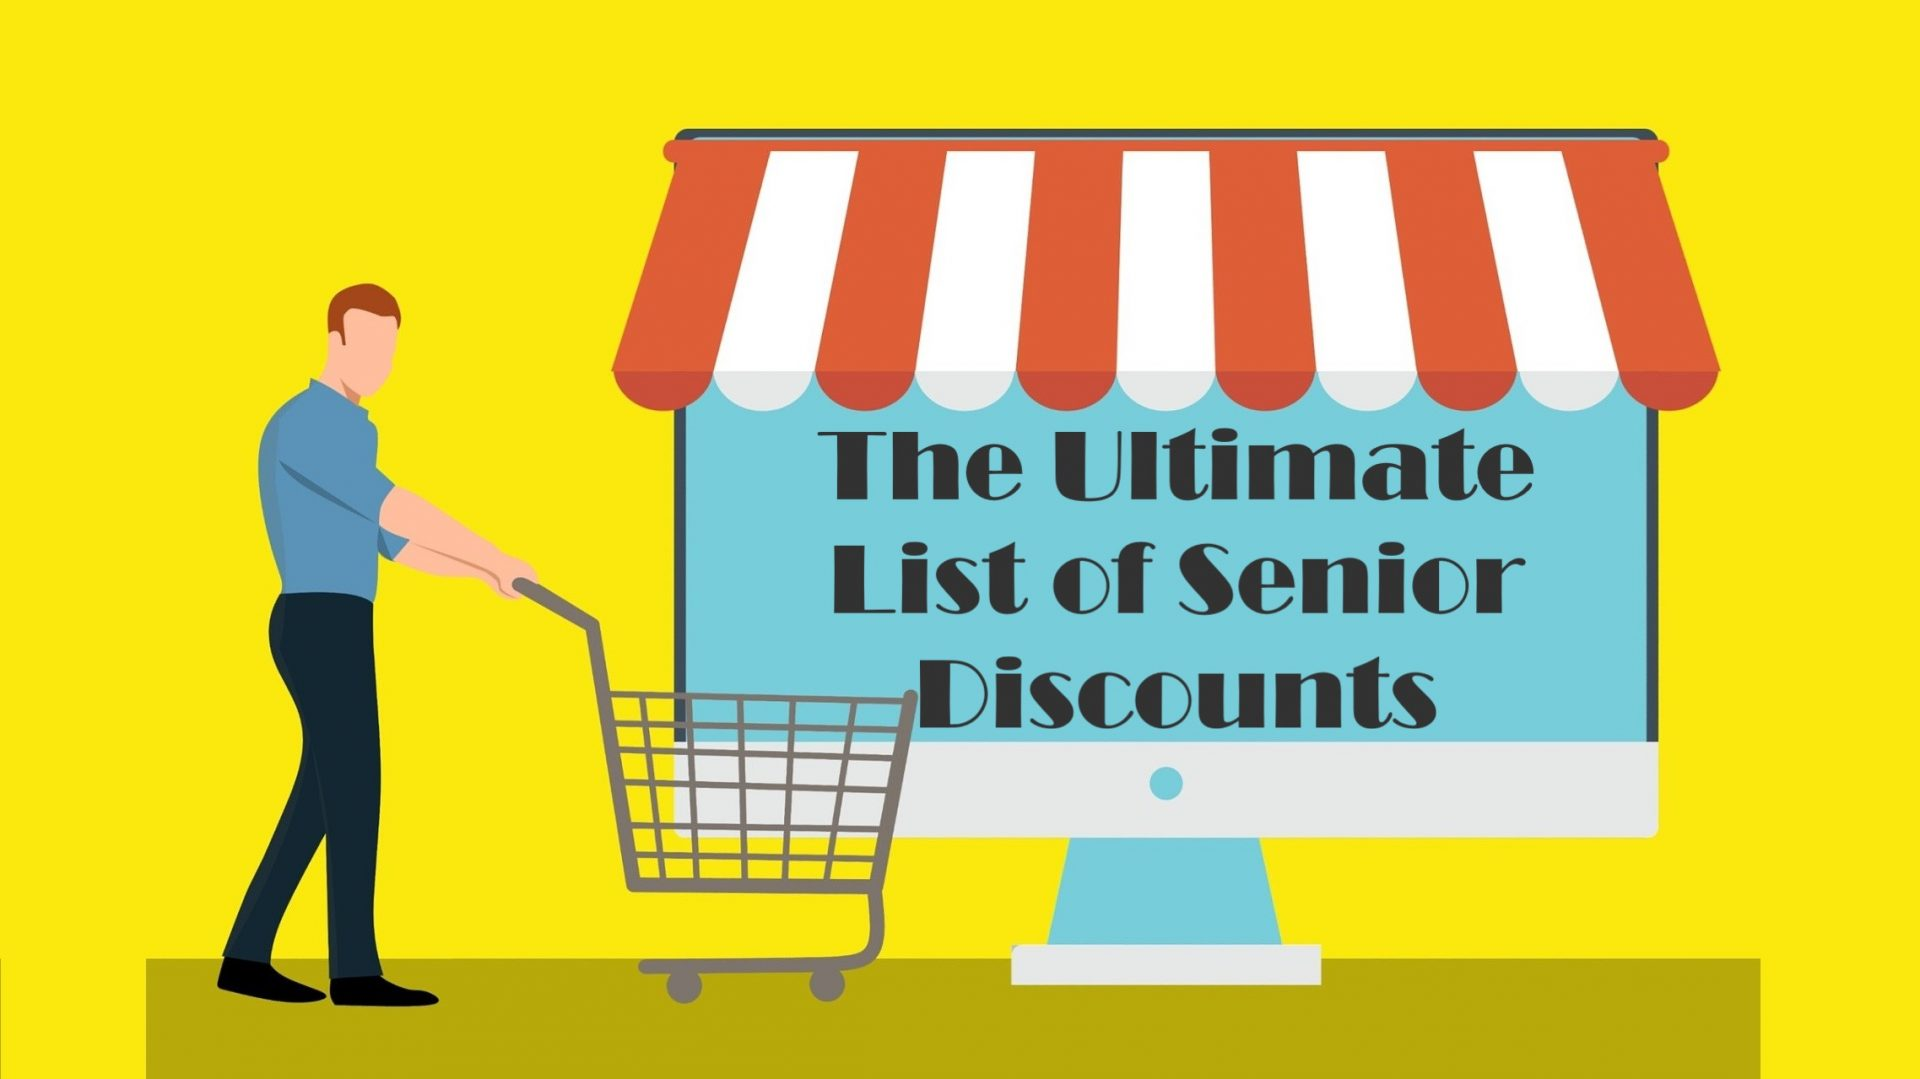 Senior Discounts - Featured Image